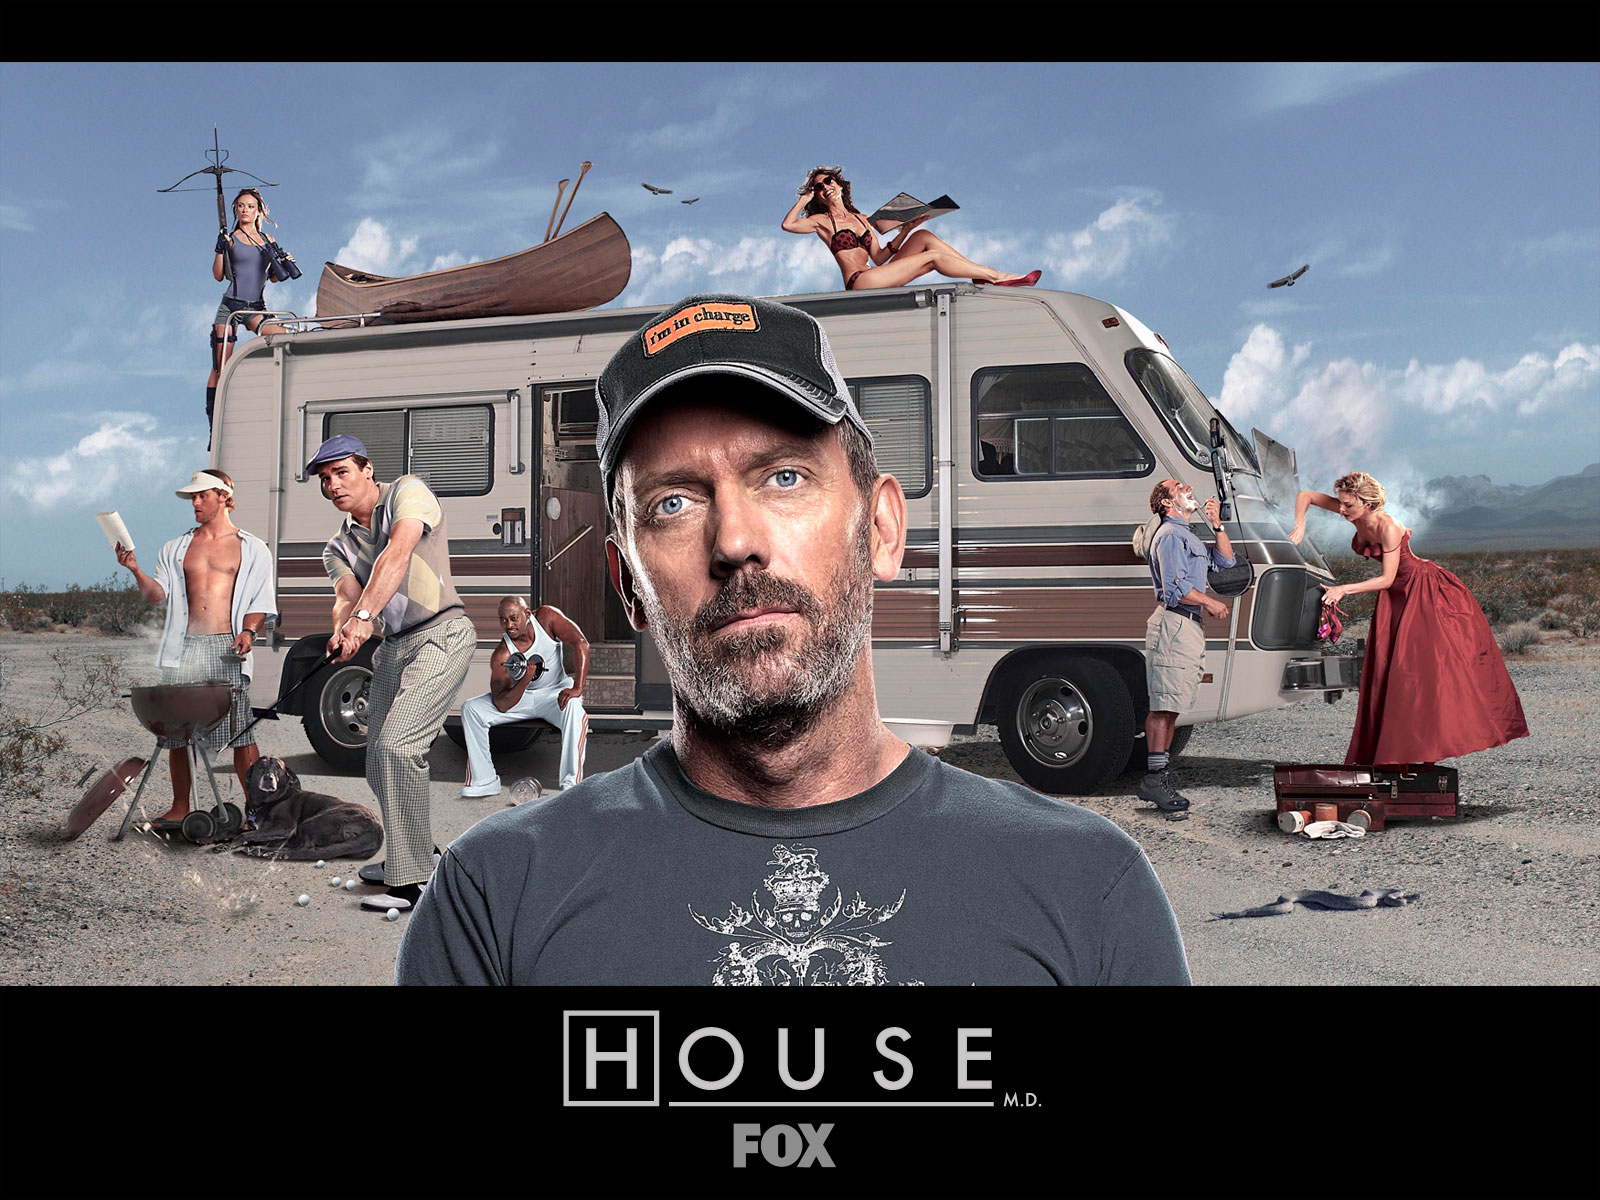 Download HQ House Wallpaper RV House M.D. wallpaper / 1600x1200